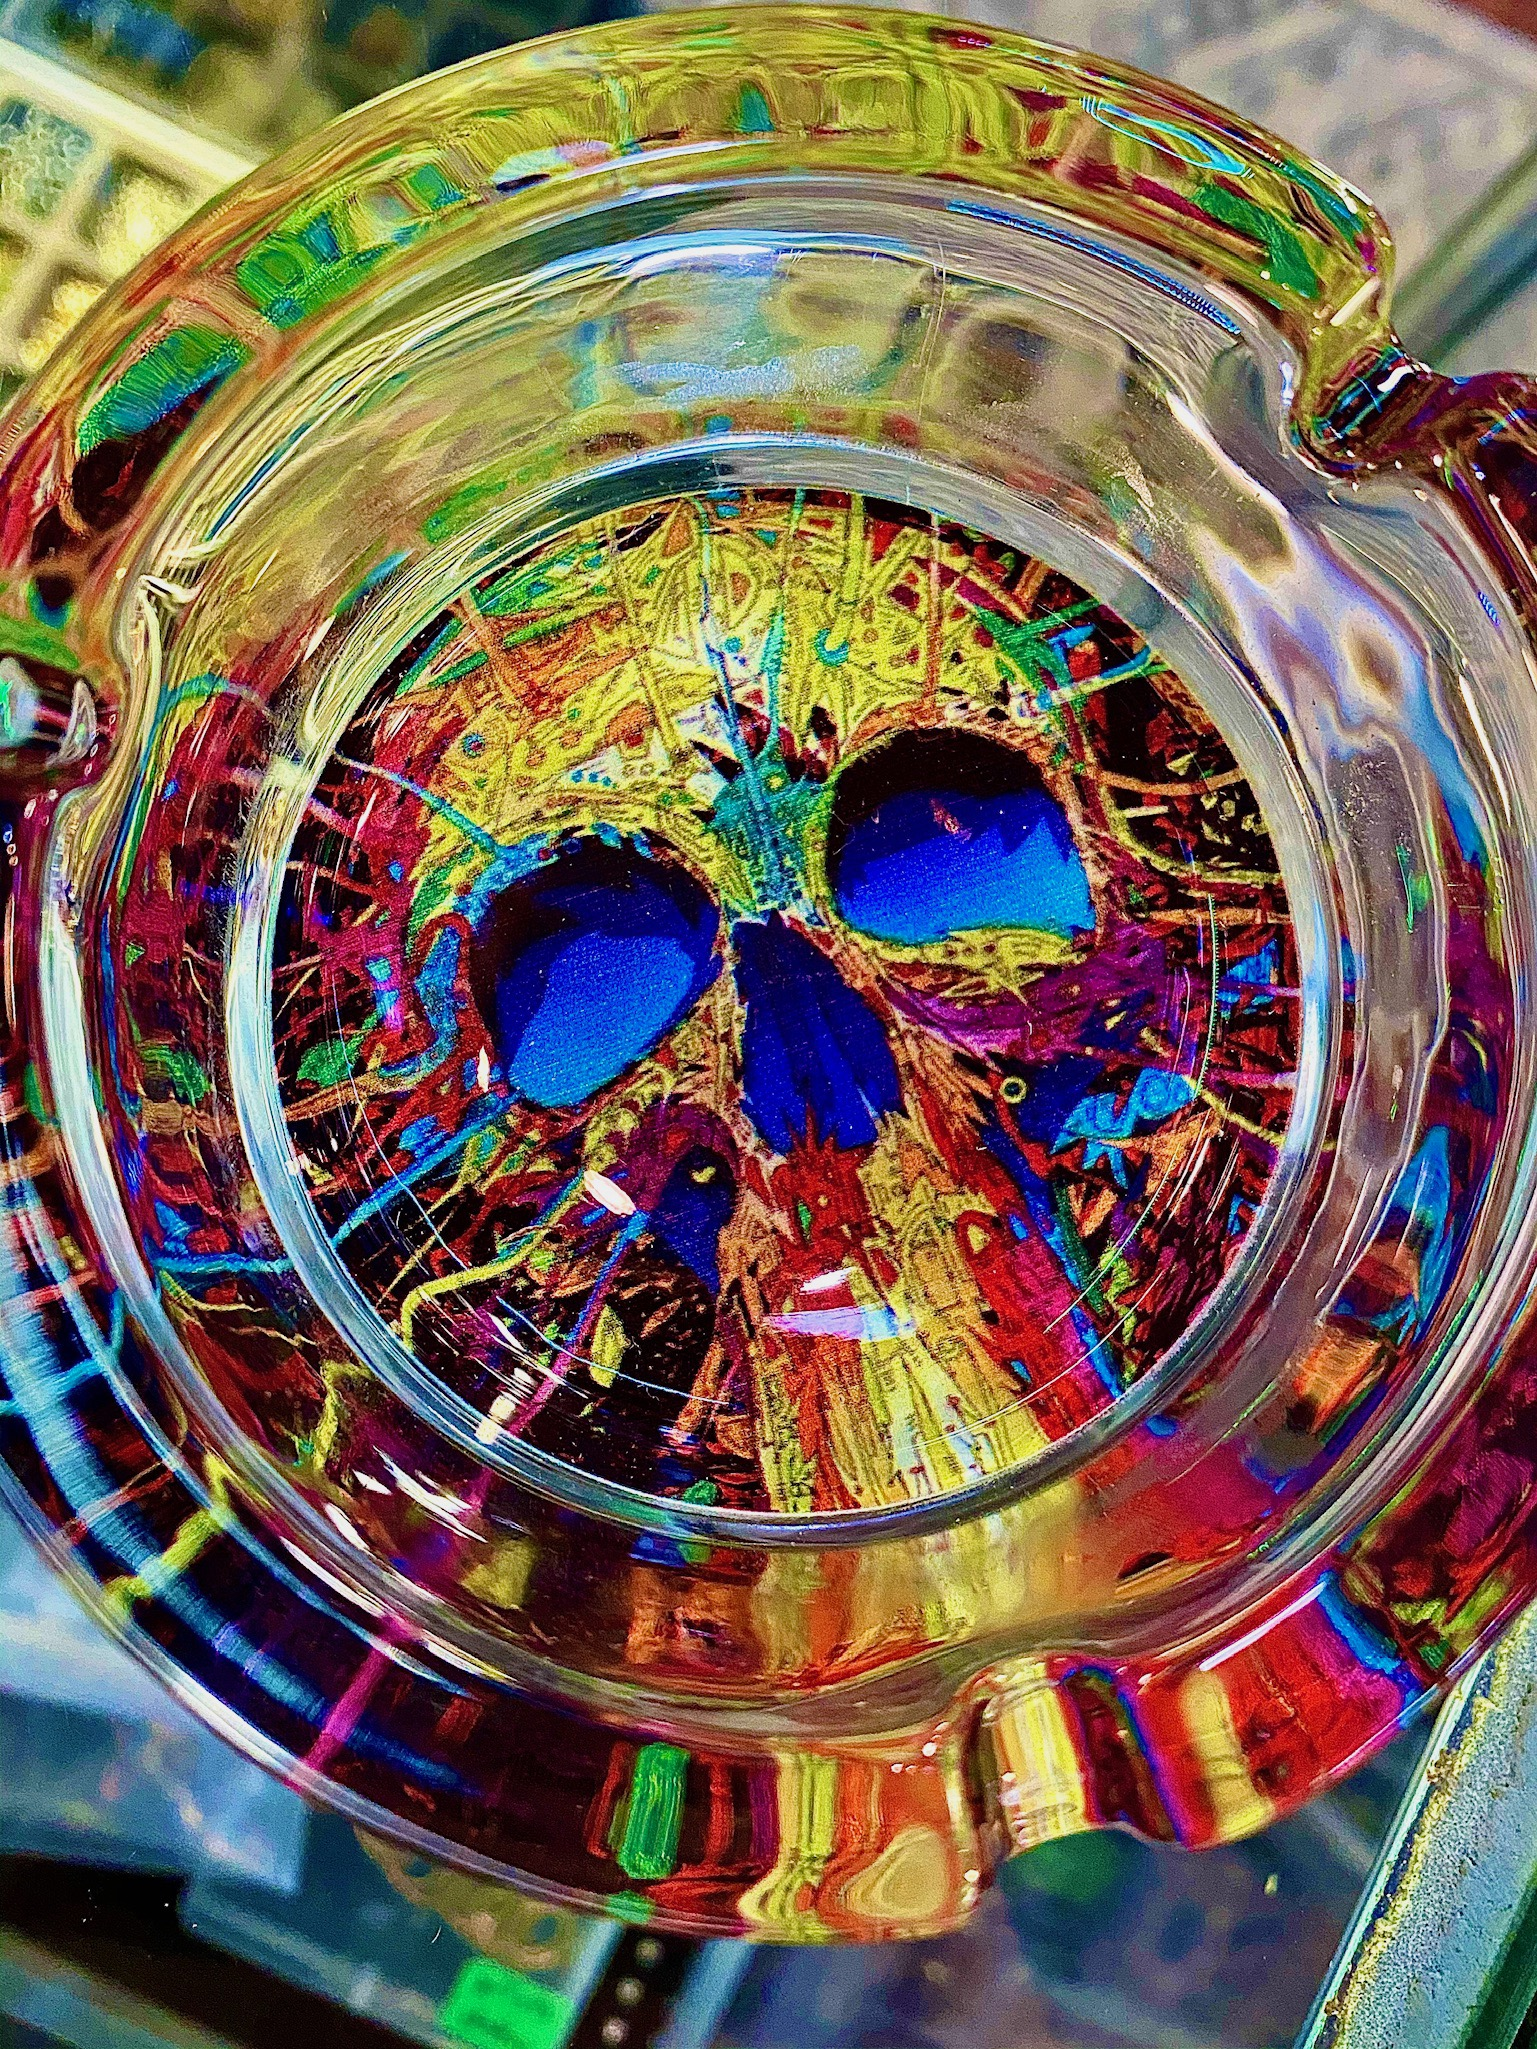 Glass tray wih colorful skull design on the bottom